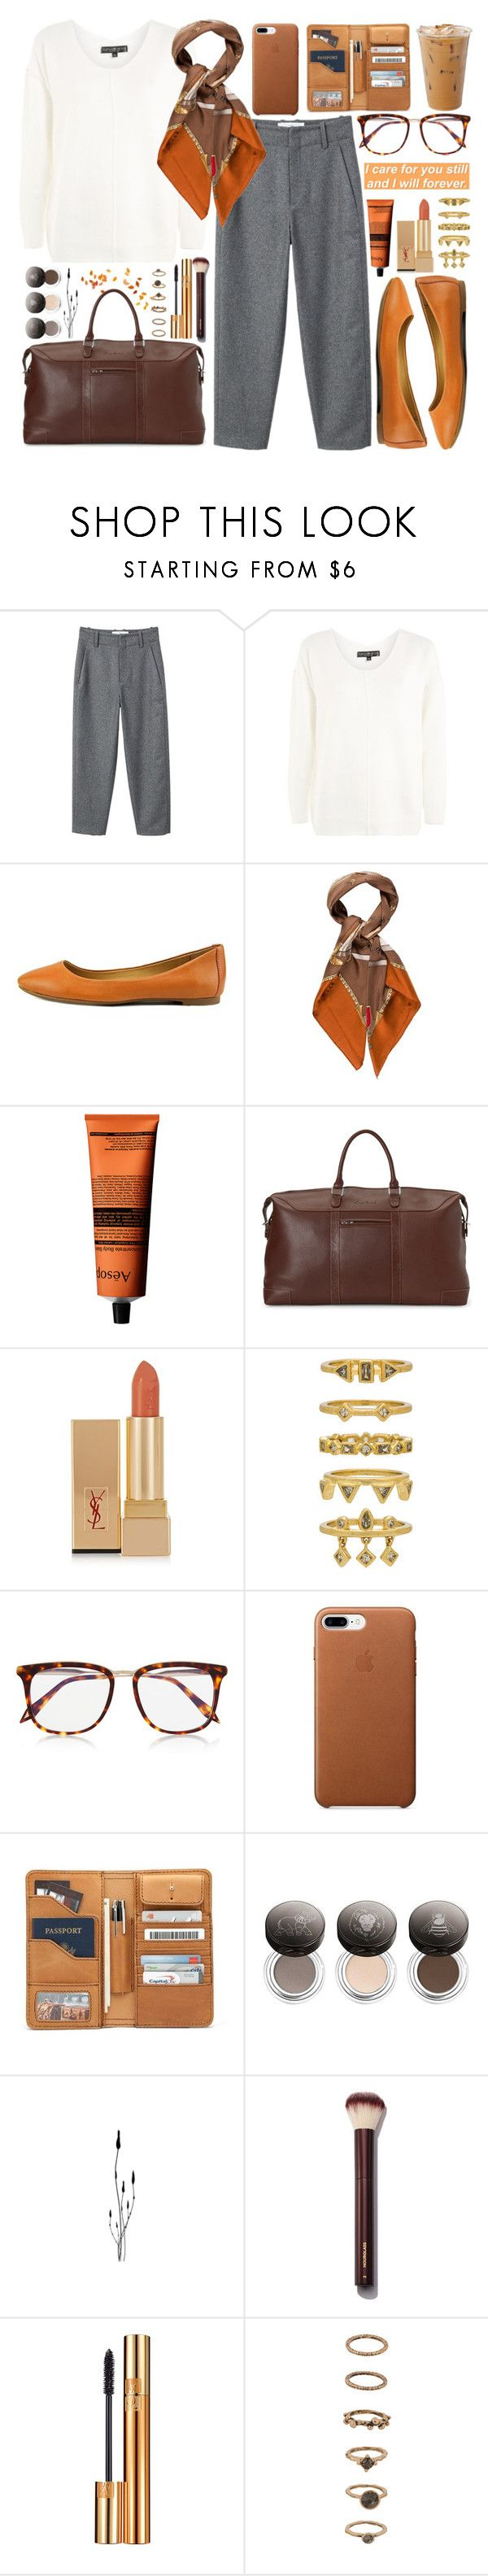 """Thanks for having me"" by carolsposito ❤ liked on Polyvore featuring MANGO, Topshop, Alfani, Gucci, Aesop, Robert Graham, Yves Saint Laurent, Luv Aj, Victoria Beckham and Chantecaille"